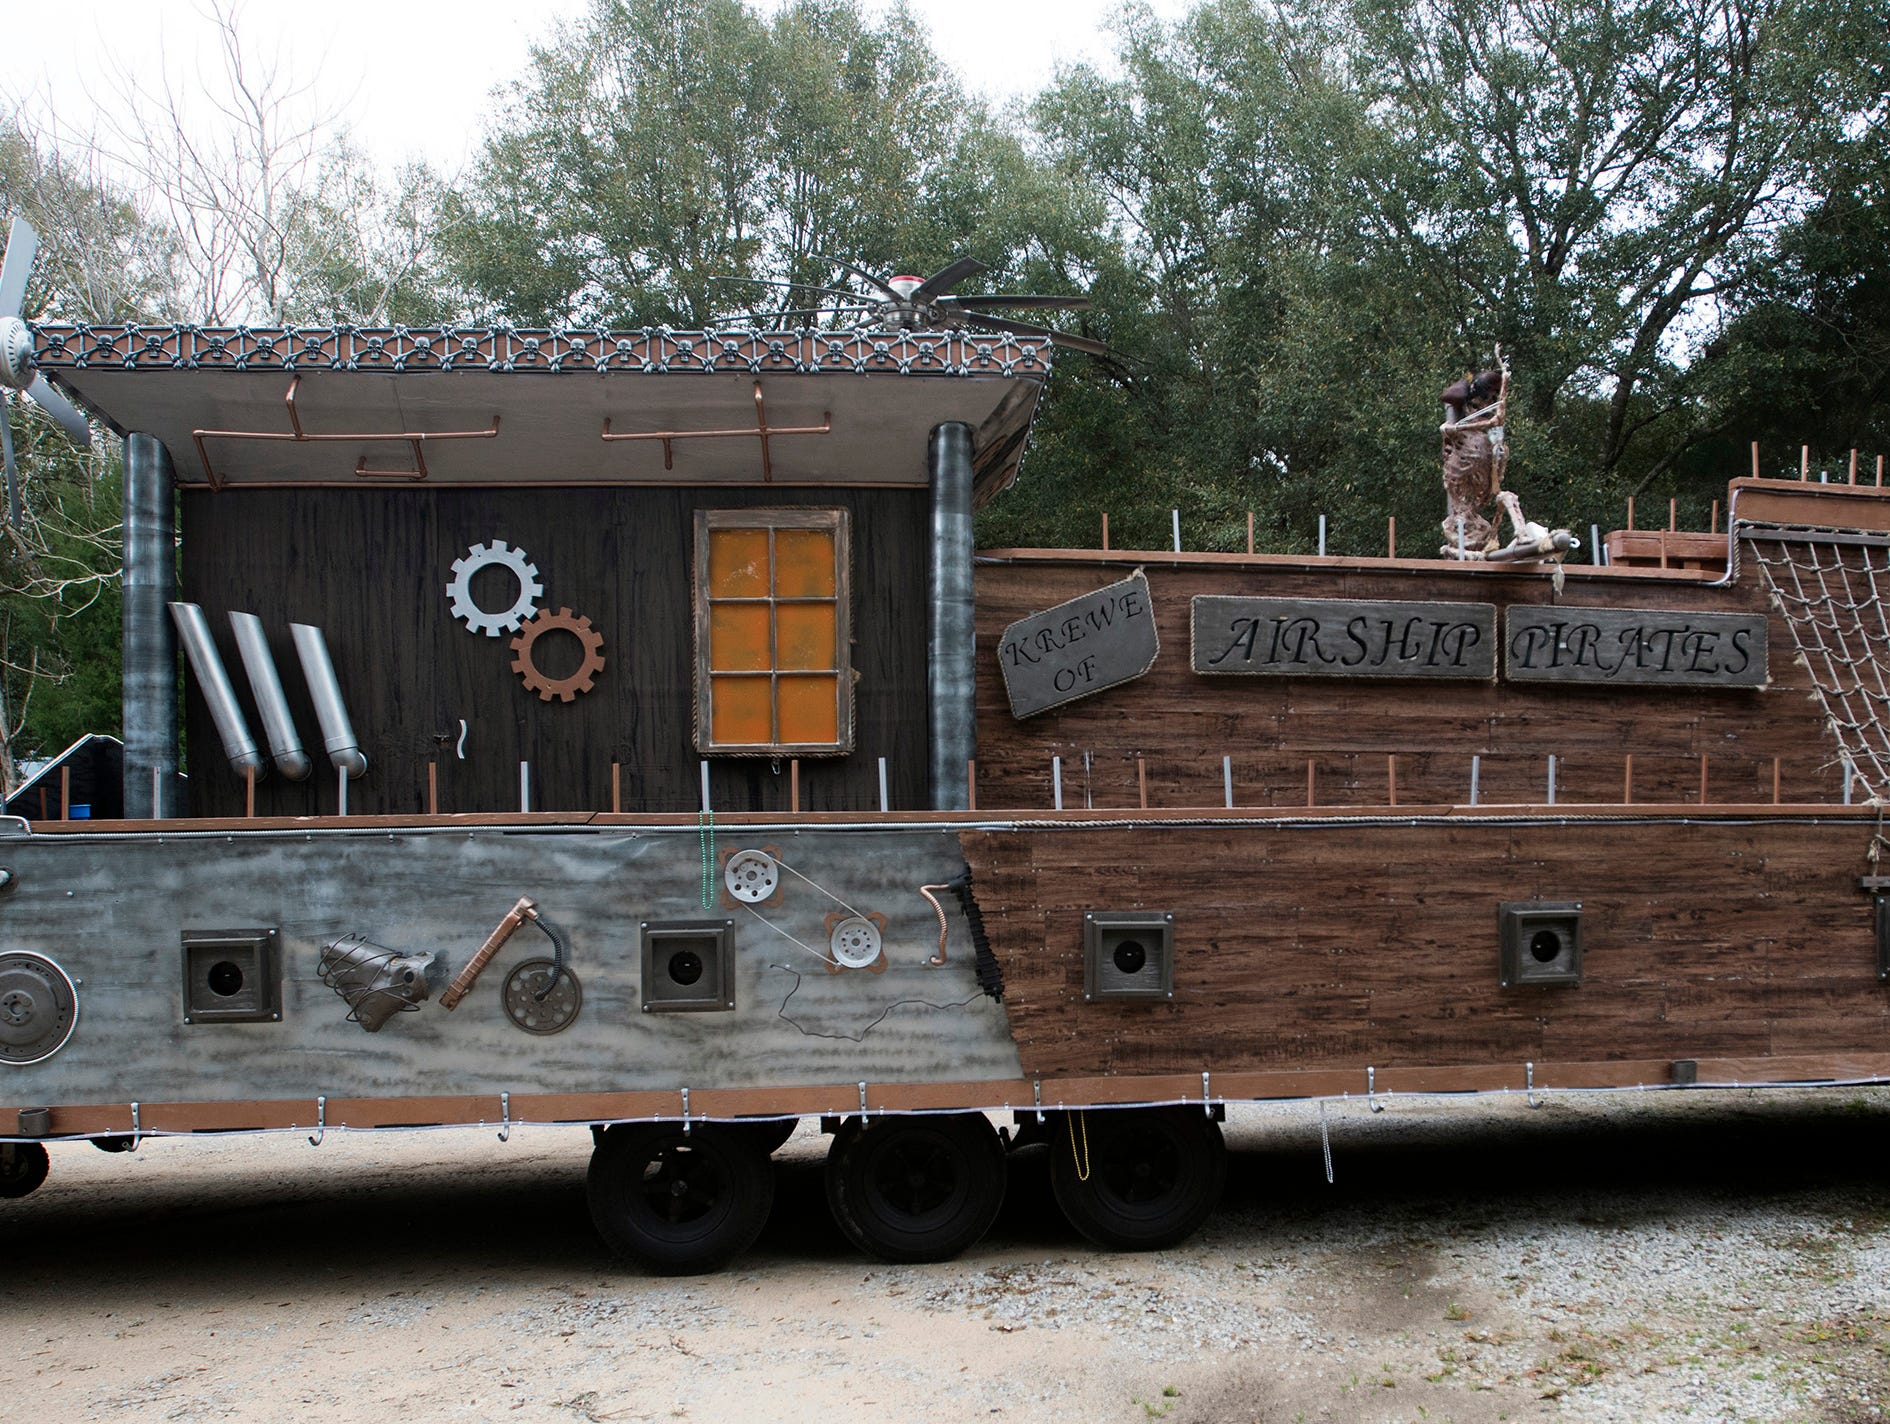 The Krewe of Airship Pirate's float ready to roll for the upcoming Mardi Gras season on Friday, Feb 8, 2019. The Krewe of Airship Pirates float will take to the streets of Milton for the first time next weekend.